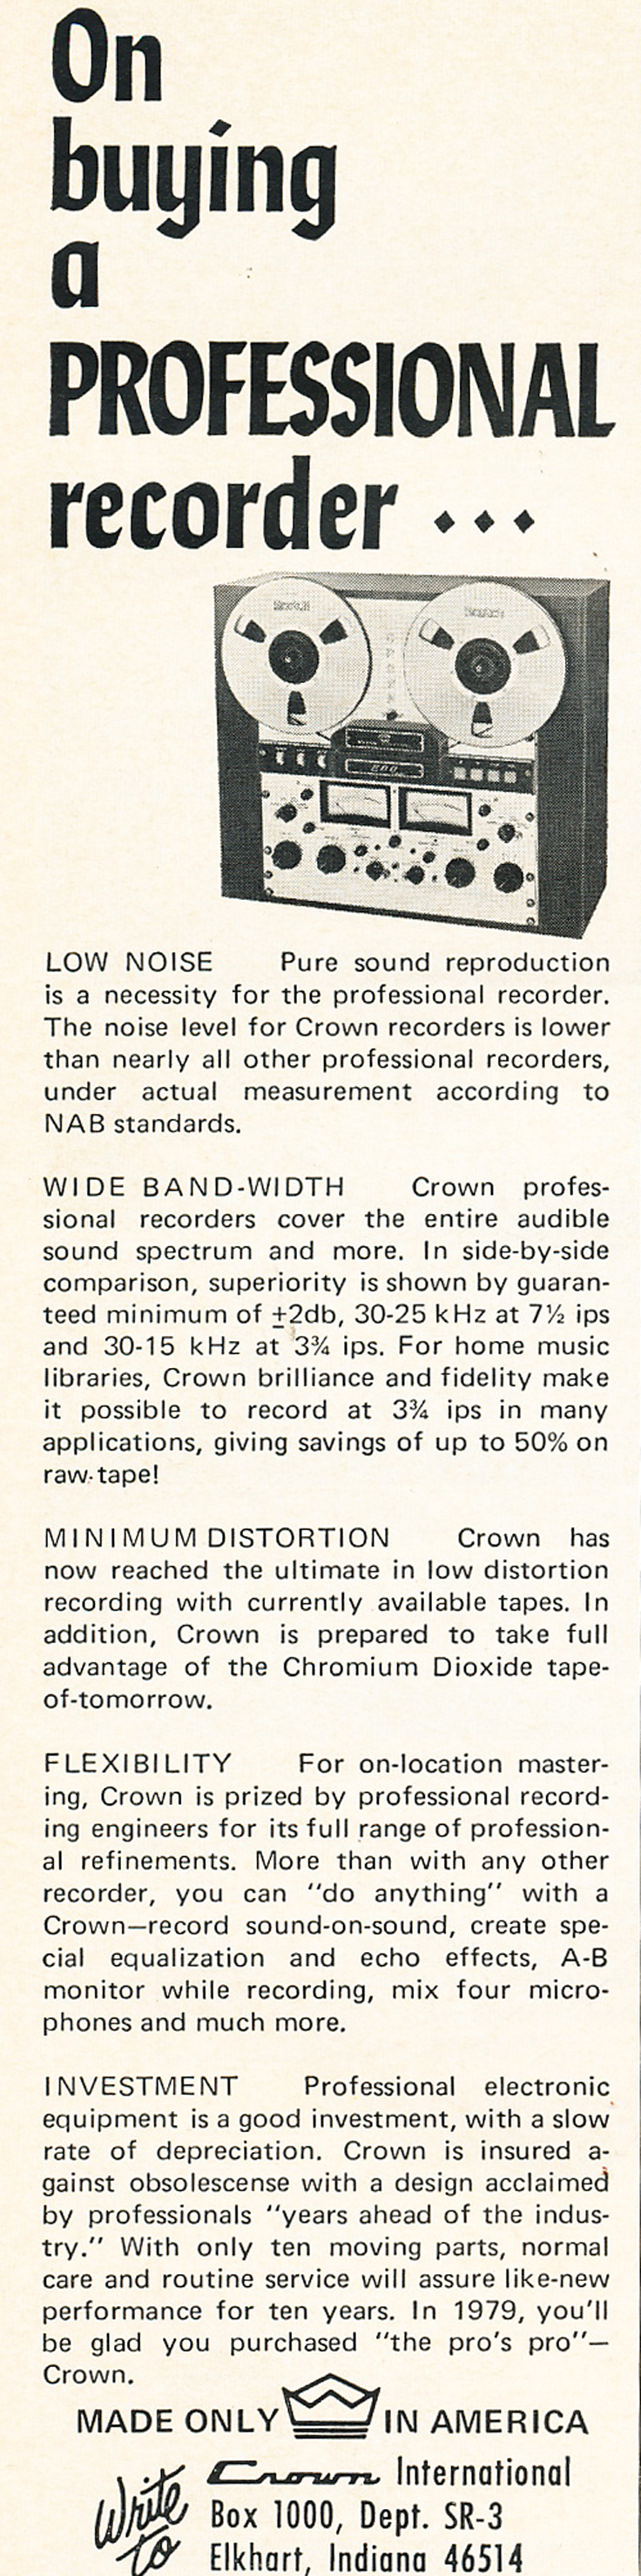 Reel To Tape Recorder Manufacturers Crown Audio Inc Amp Schematic 1969 Ad In The Reel2reeltexascom Vintage Recording Collection